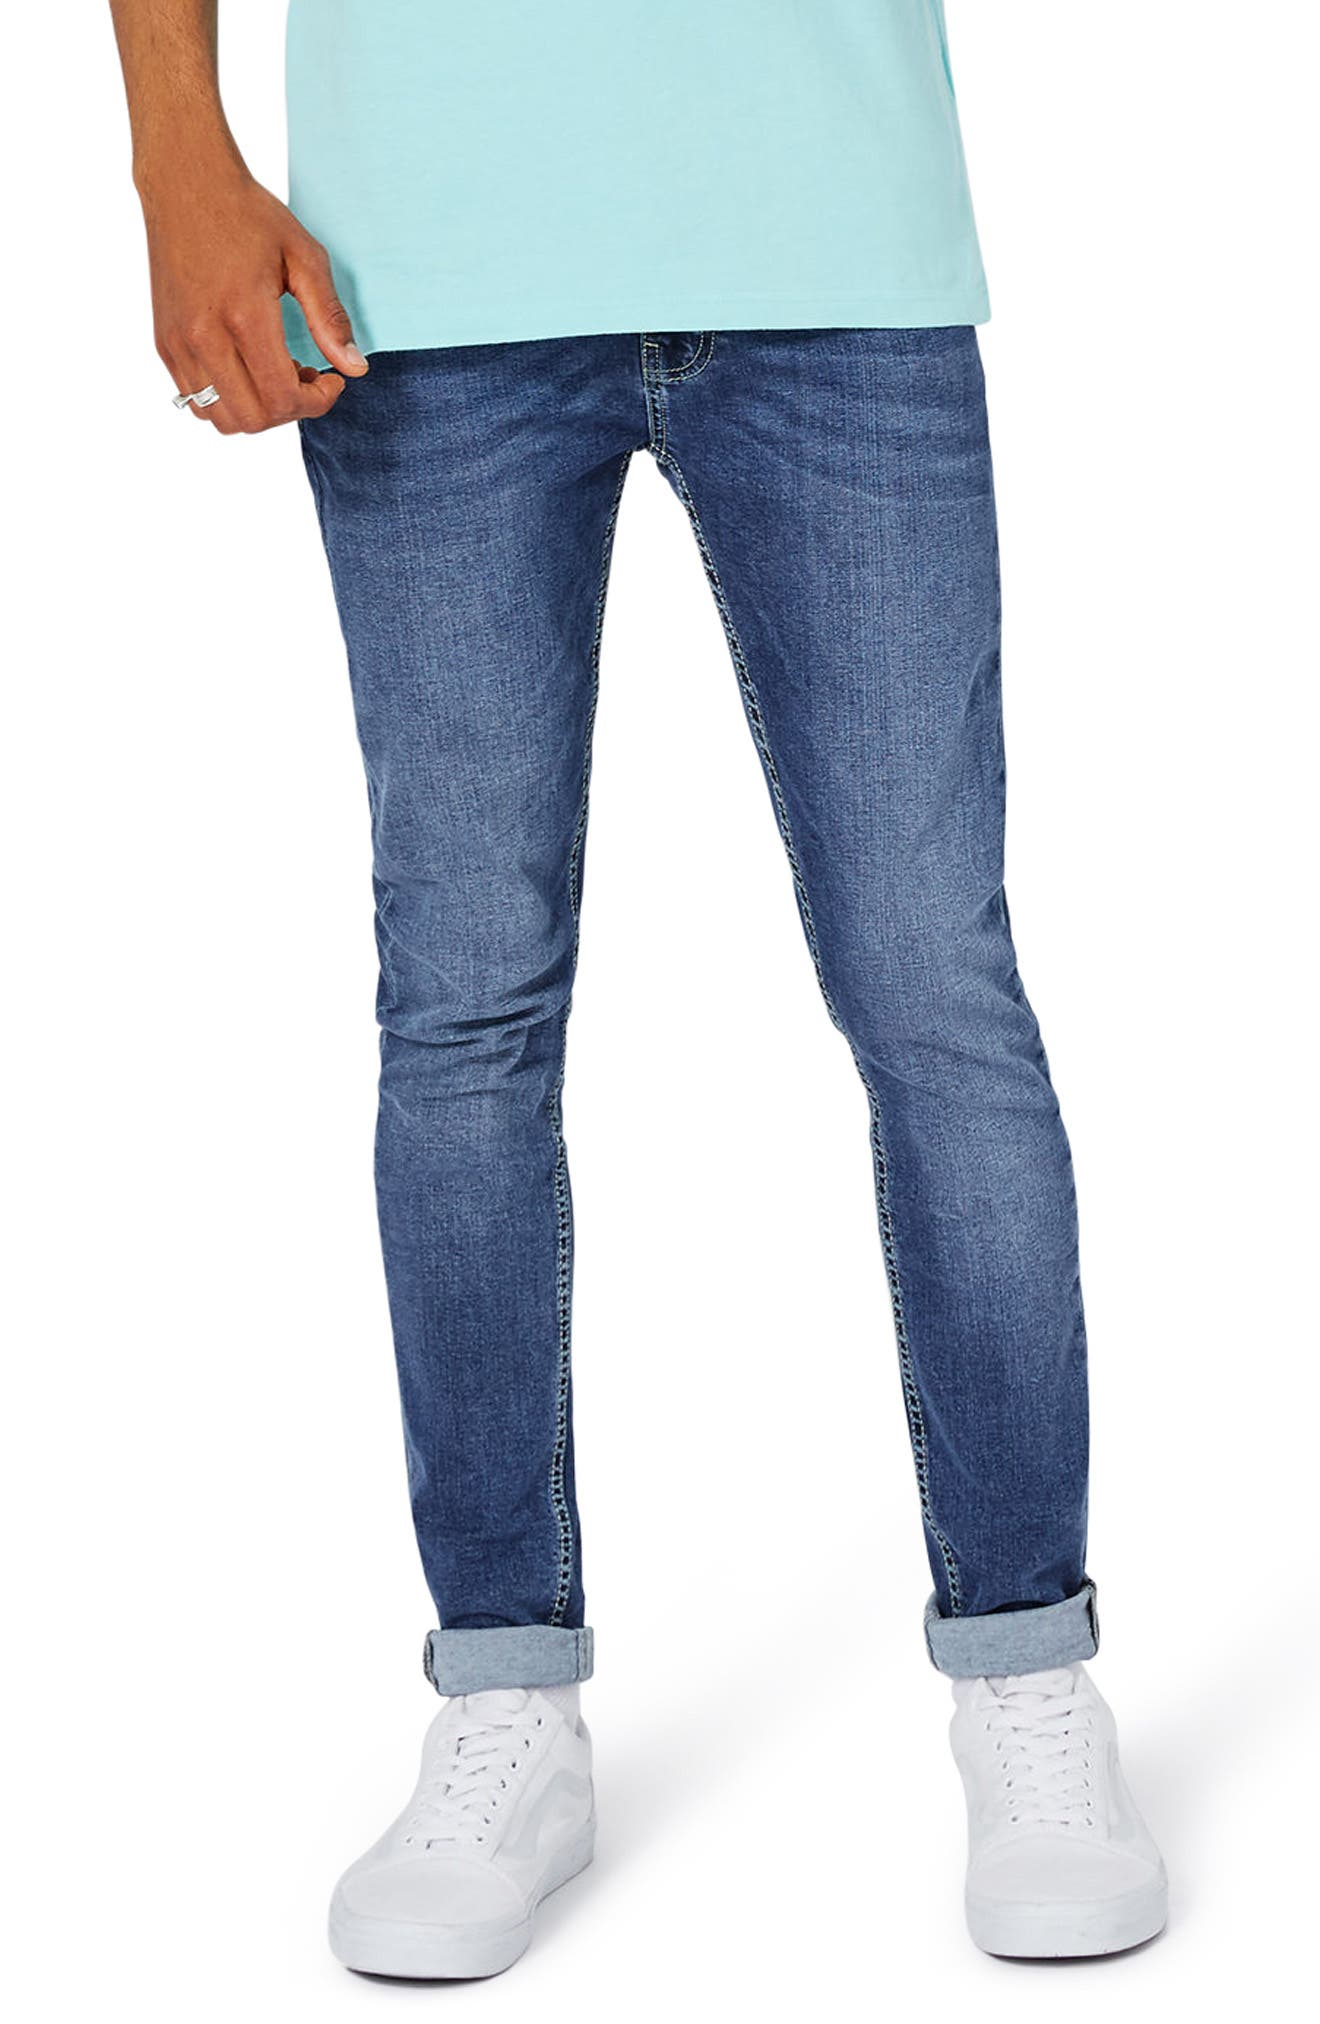 Spray-On Skinny Fit Jeans,                         Main,                         color, Blue